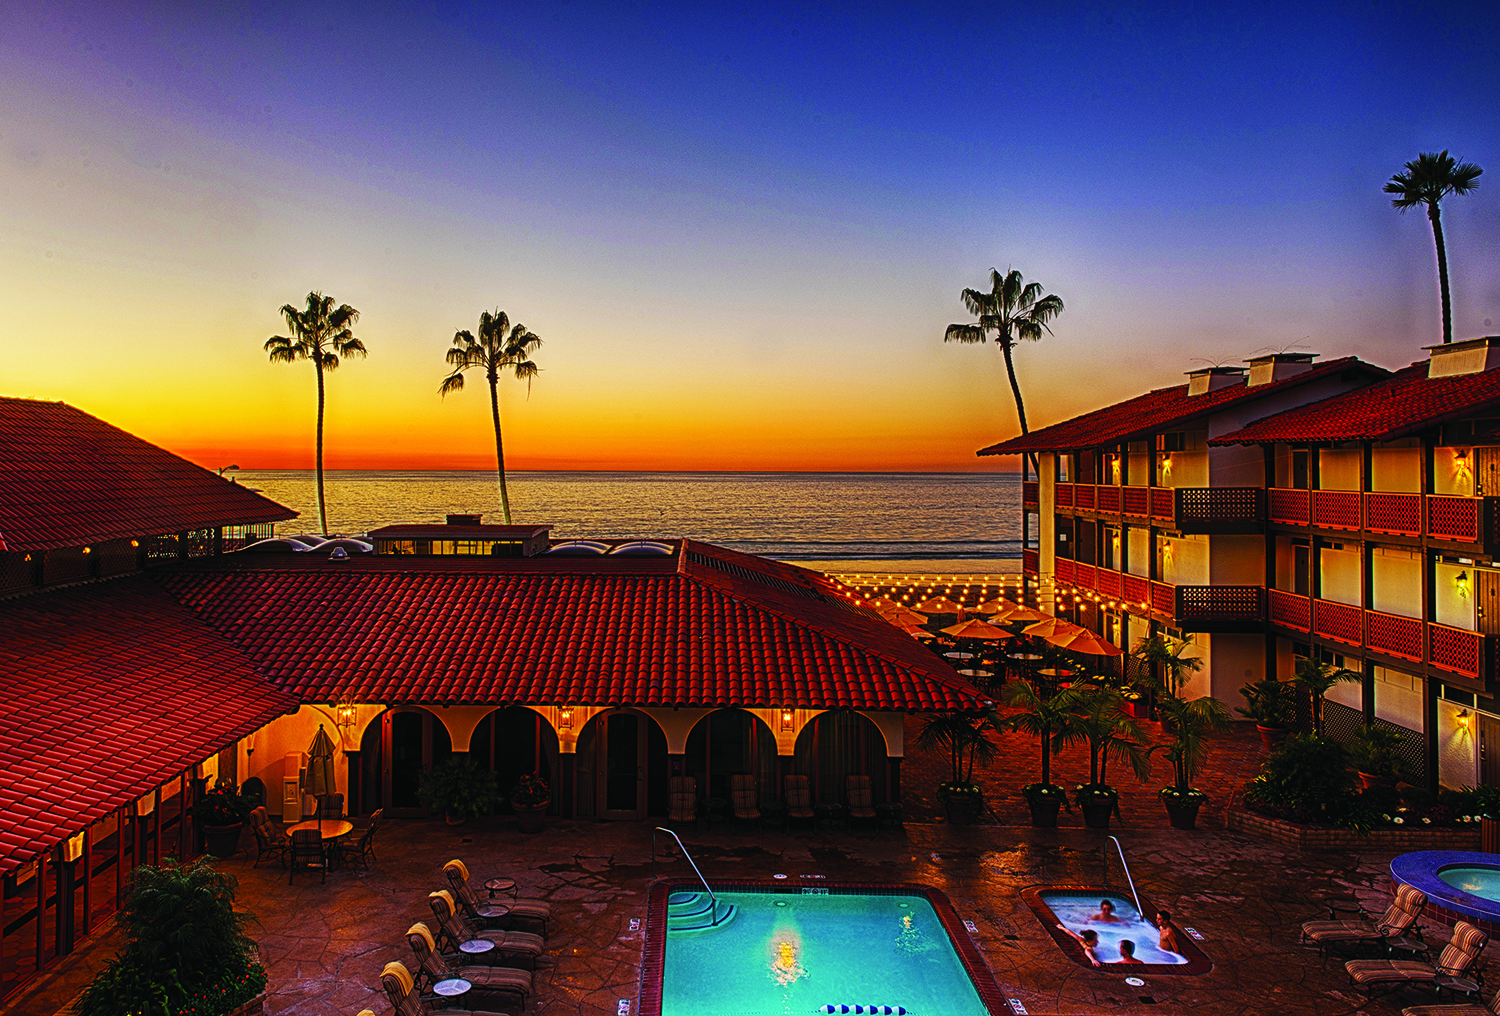 La Jolla Shores Hotel family pool with sunset